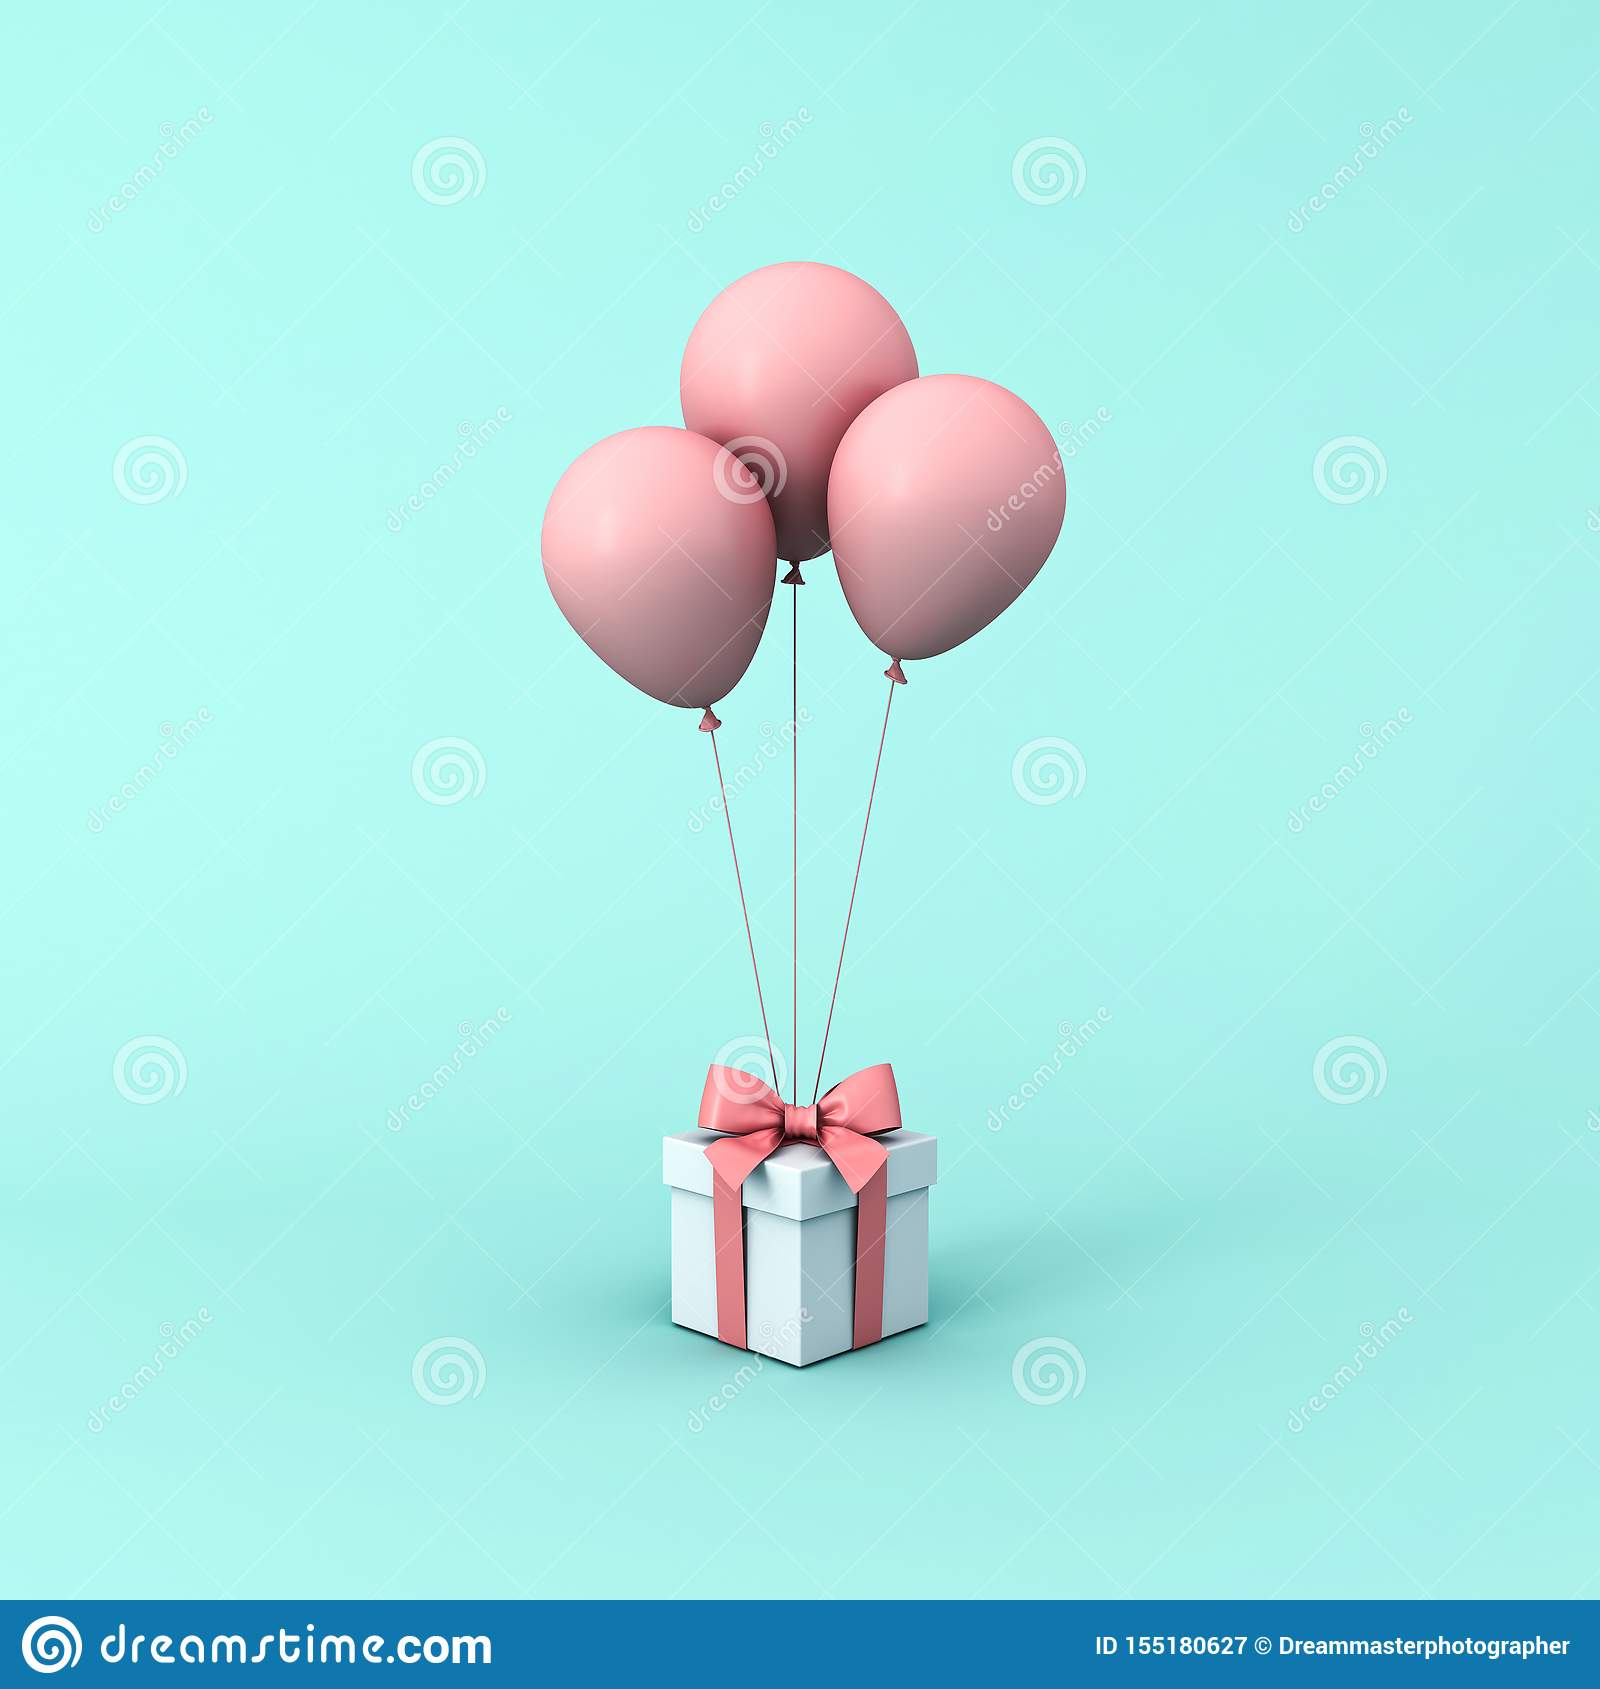 Gift box or present box with pink pastel color balloons isolated on light green blue pastel color background